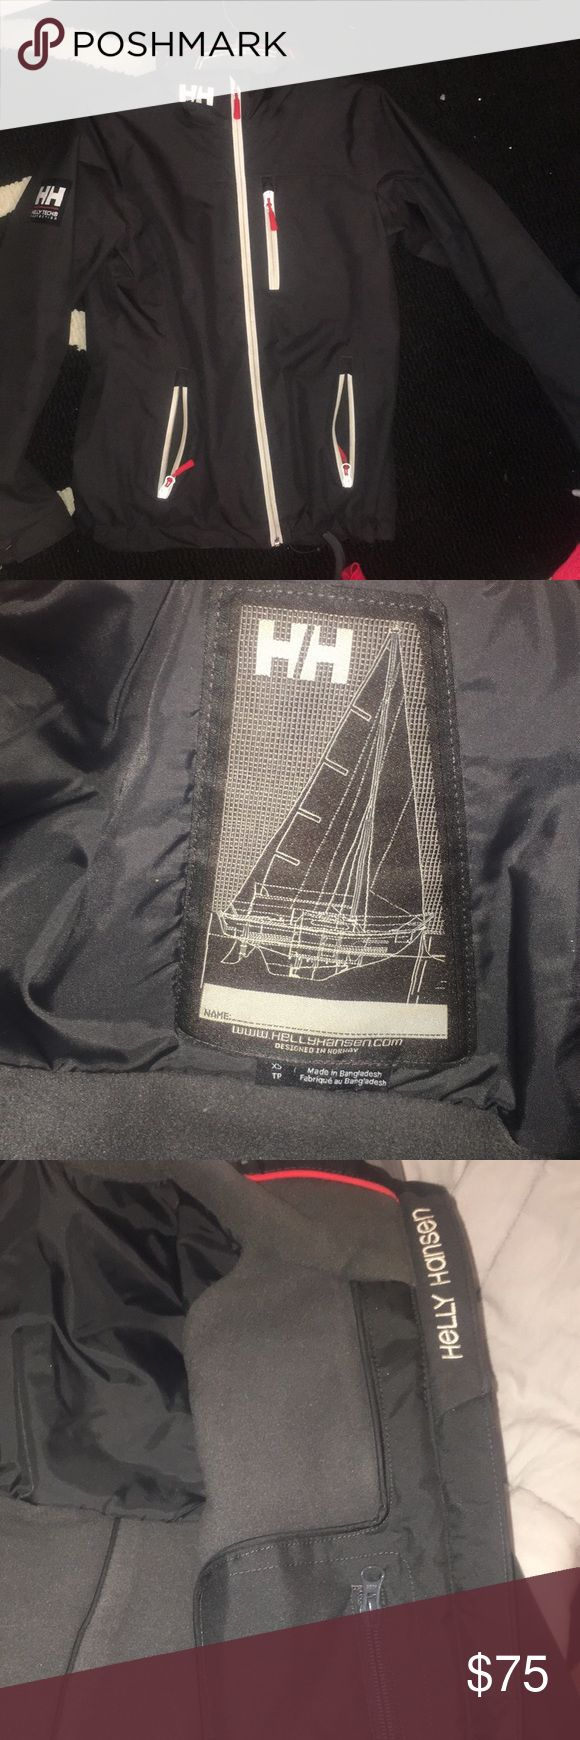 Helly Hansen Jacket Great condition, waterproof! No marks or tears on jacket anywhere. Helly Hansen Jackets & Coats